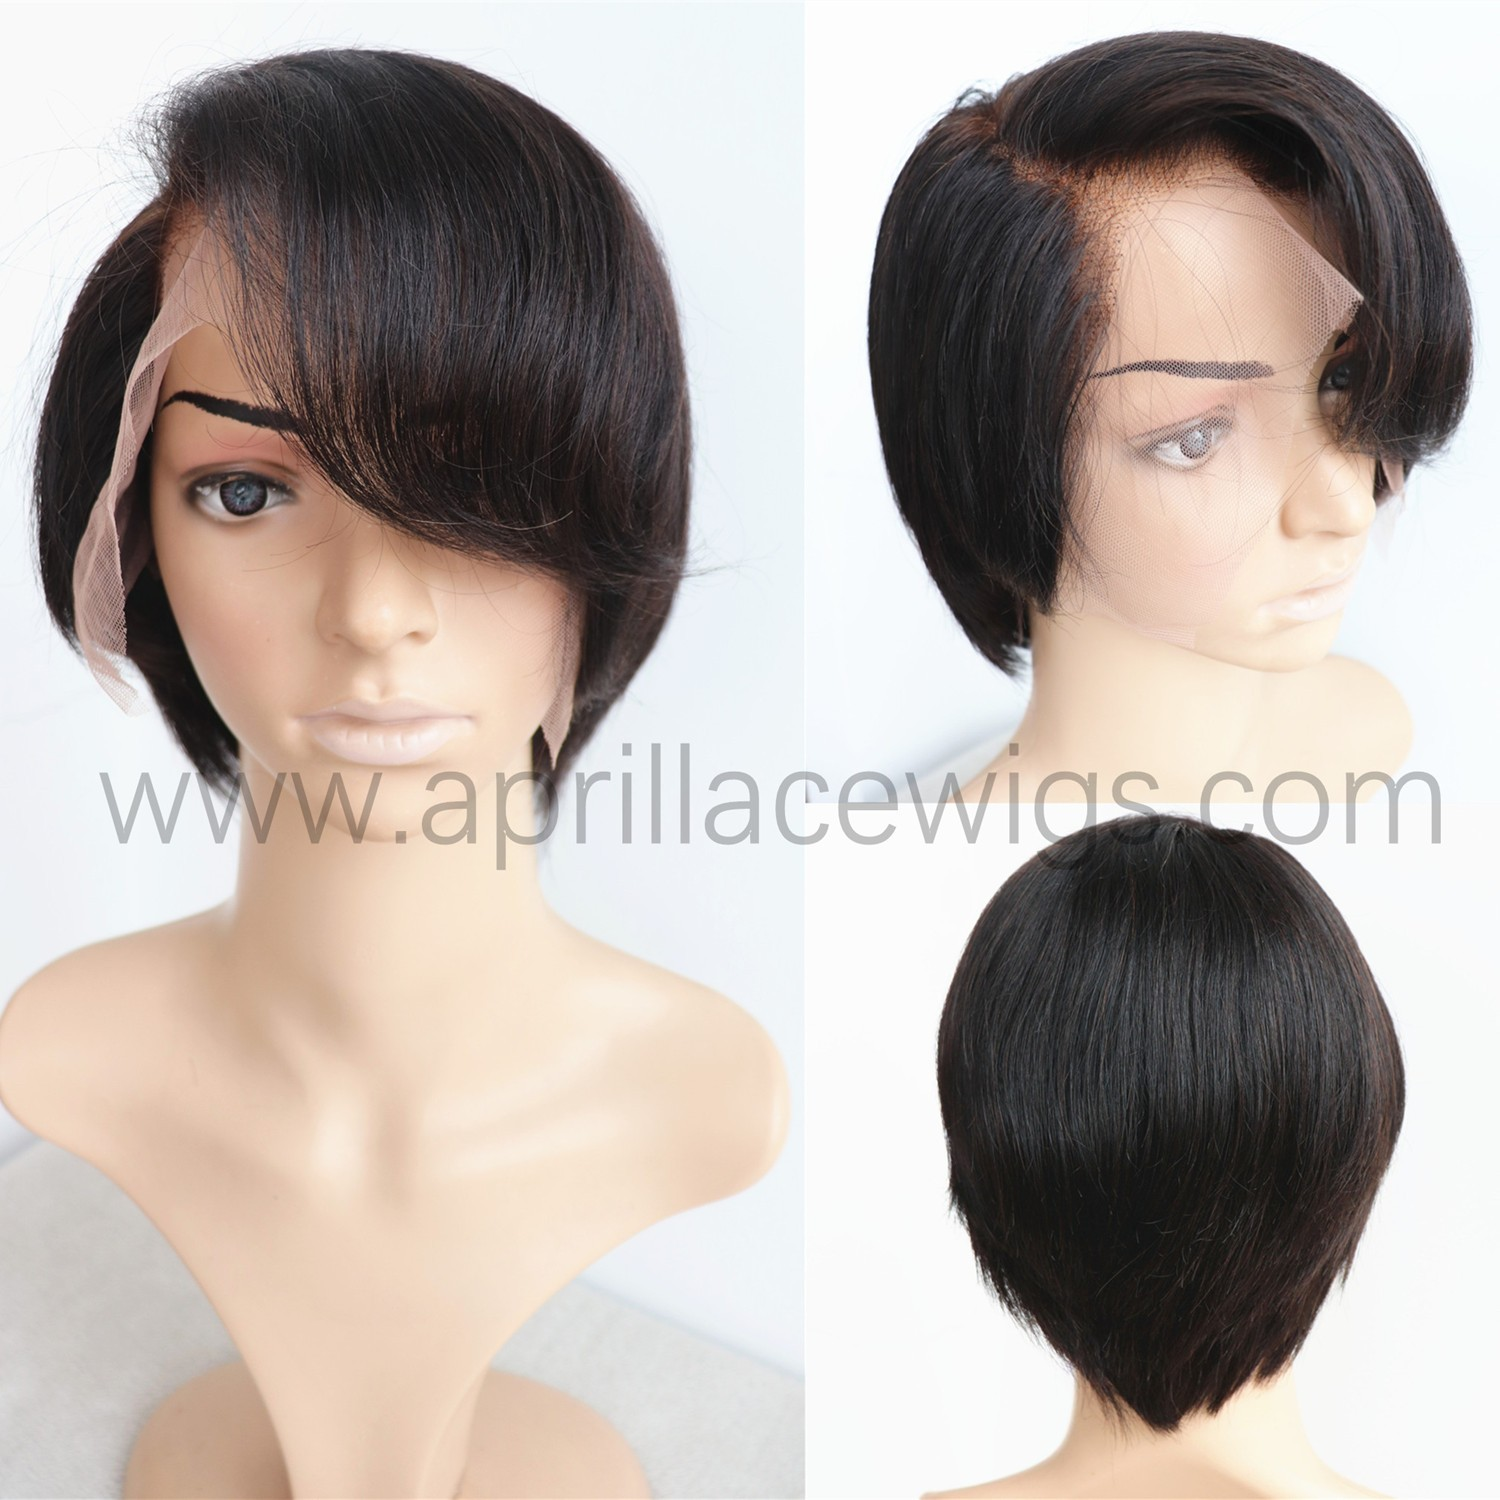 Virgin straight pixie cut 150% density 6'' lace front wig preplucked hairline